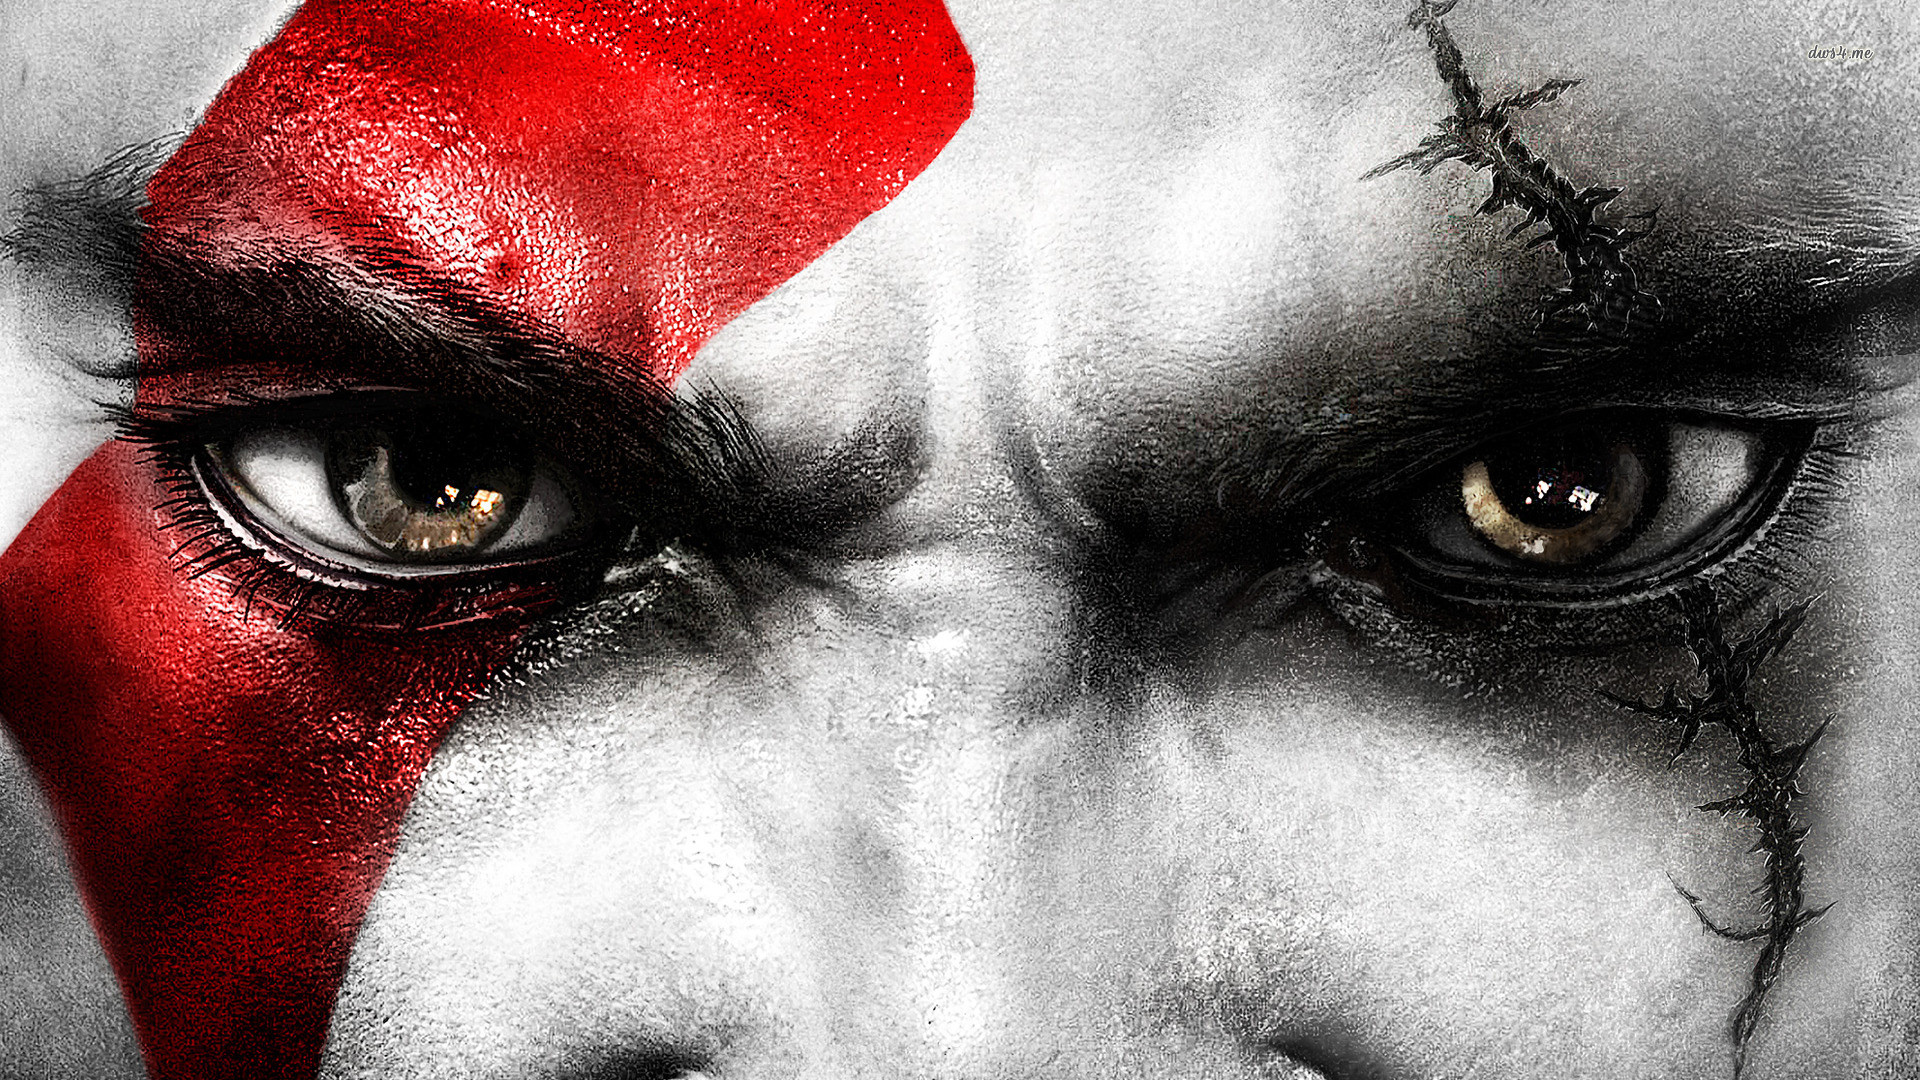 1920x1080 17 Best images about God Of War on Pinterest | Artworks, Videogames and  Gaming